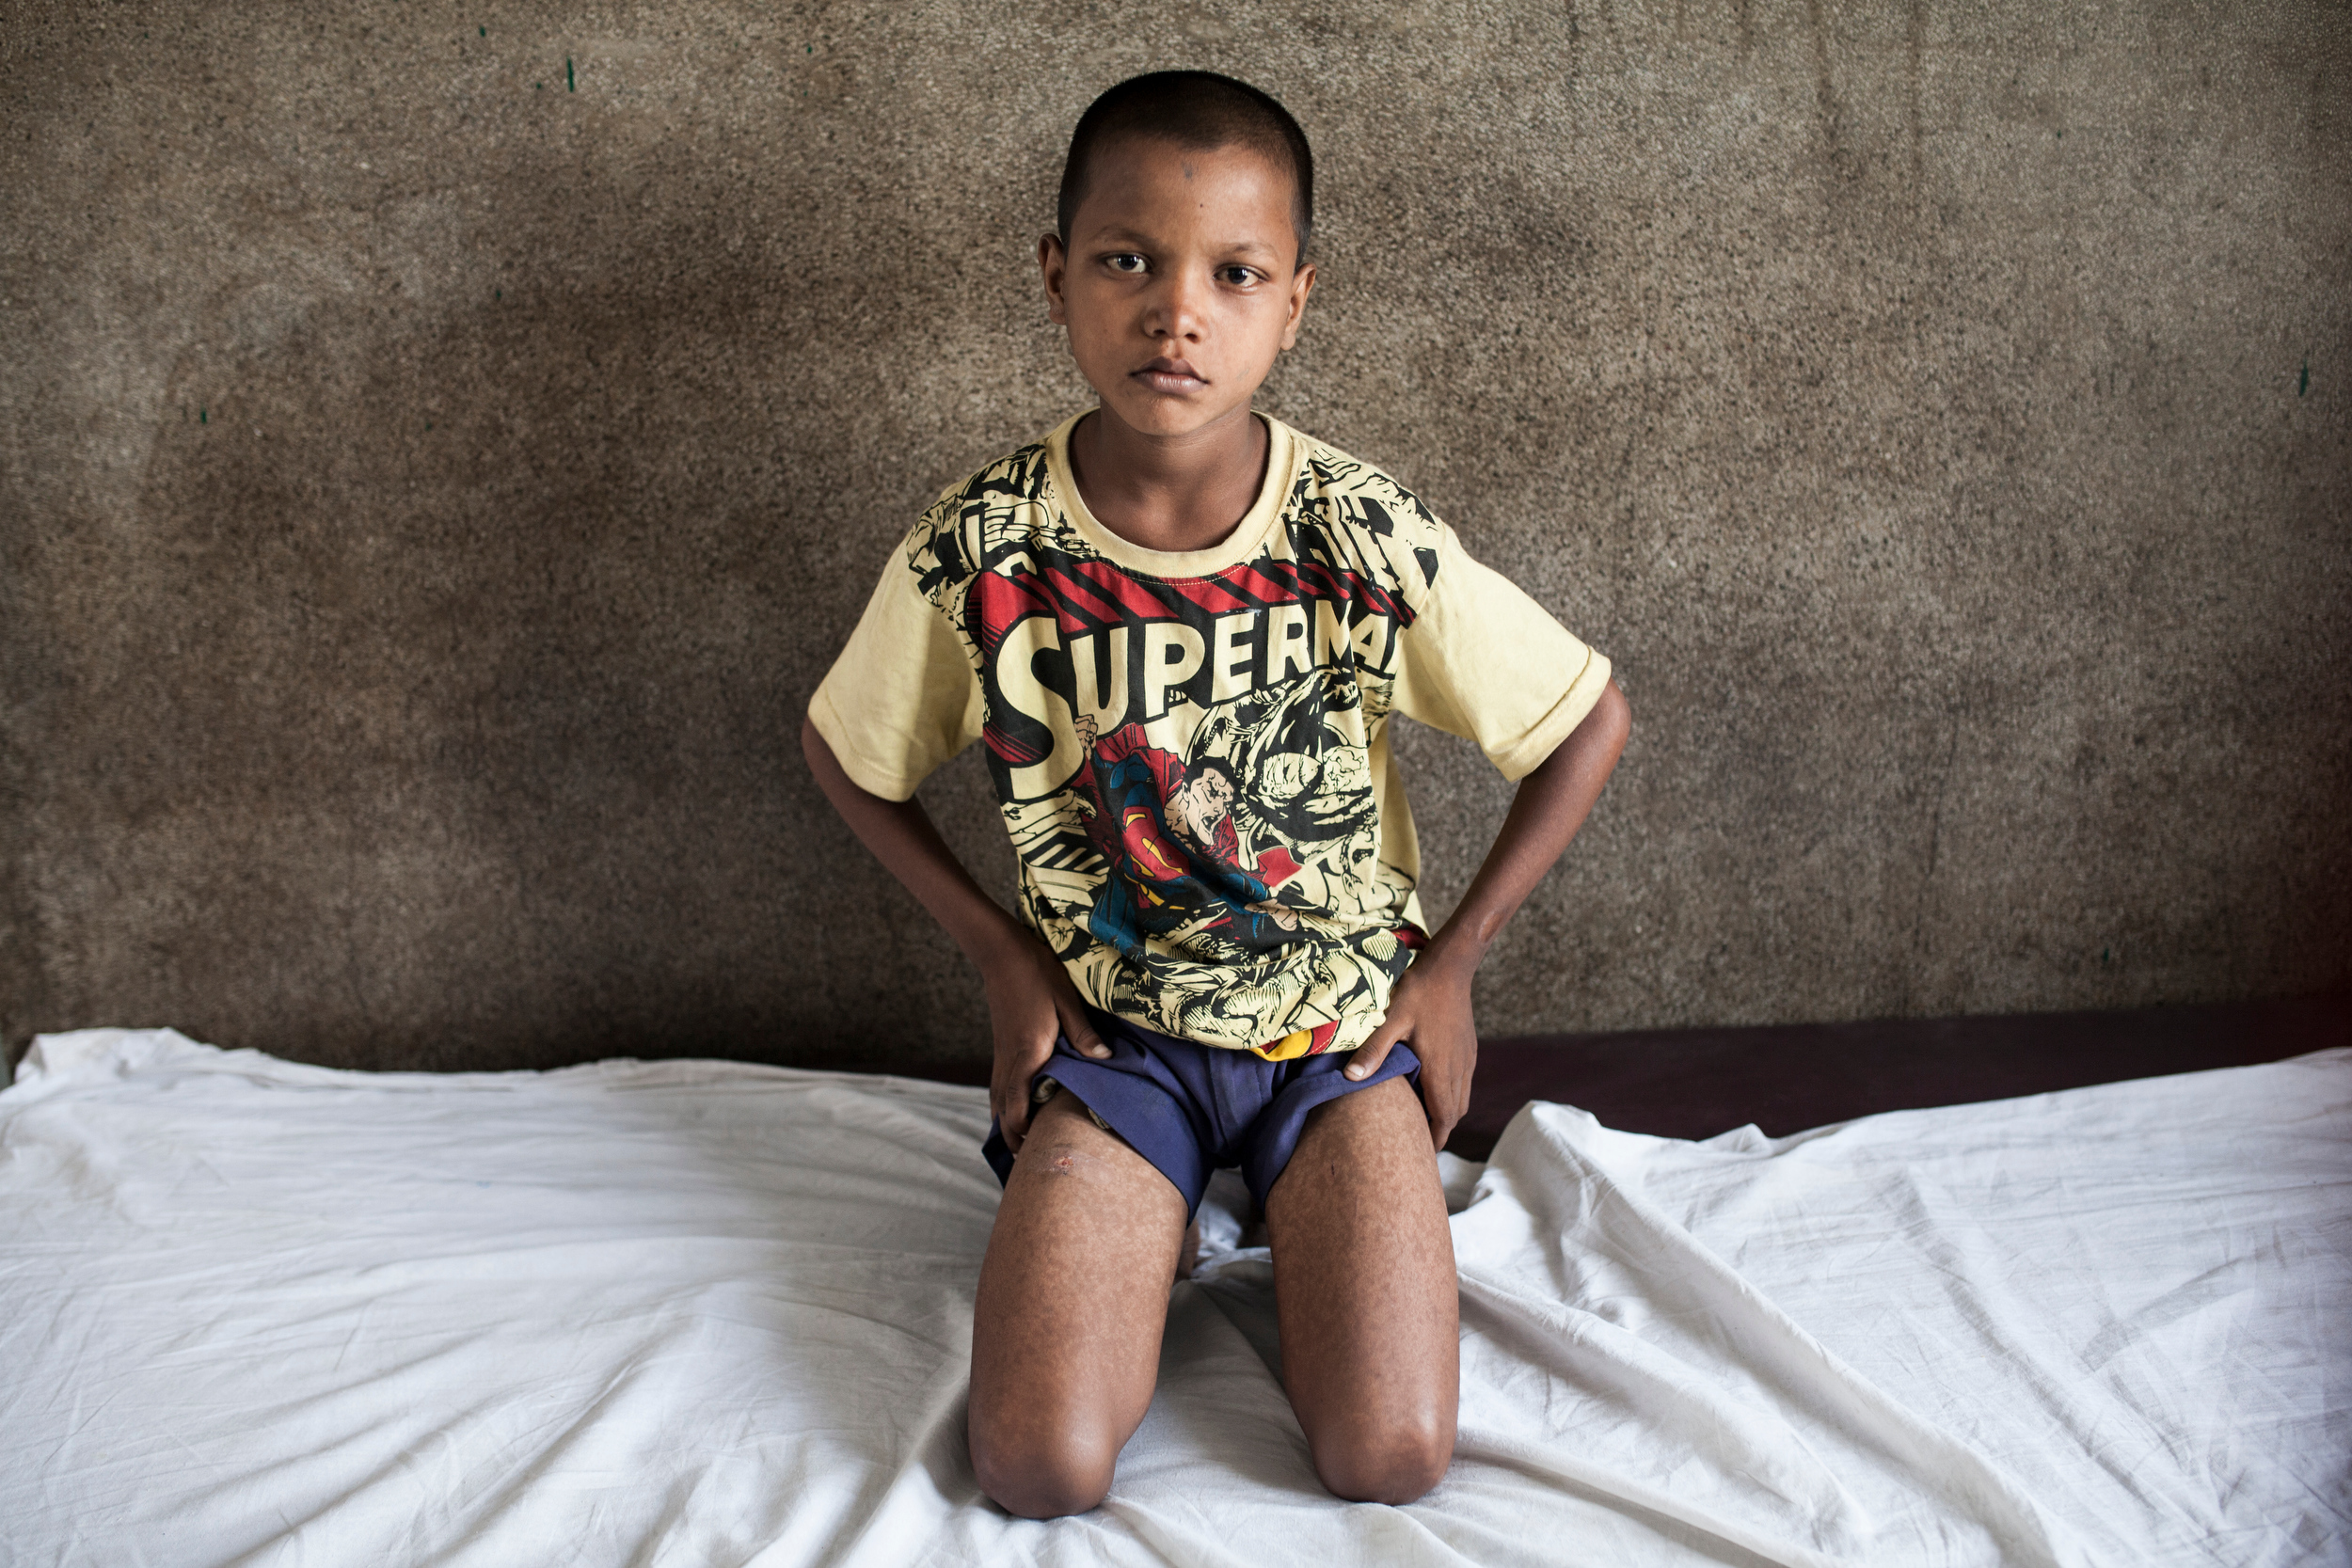 Ranjit is 10 years old and suffers from Visceral Leishmaniasis commonly known in India as the Black Fever. He came to Harjipur from Dharahara with his older brothers seeking treatment.